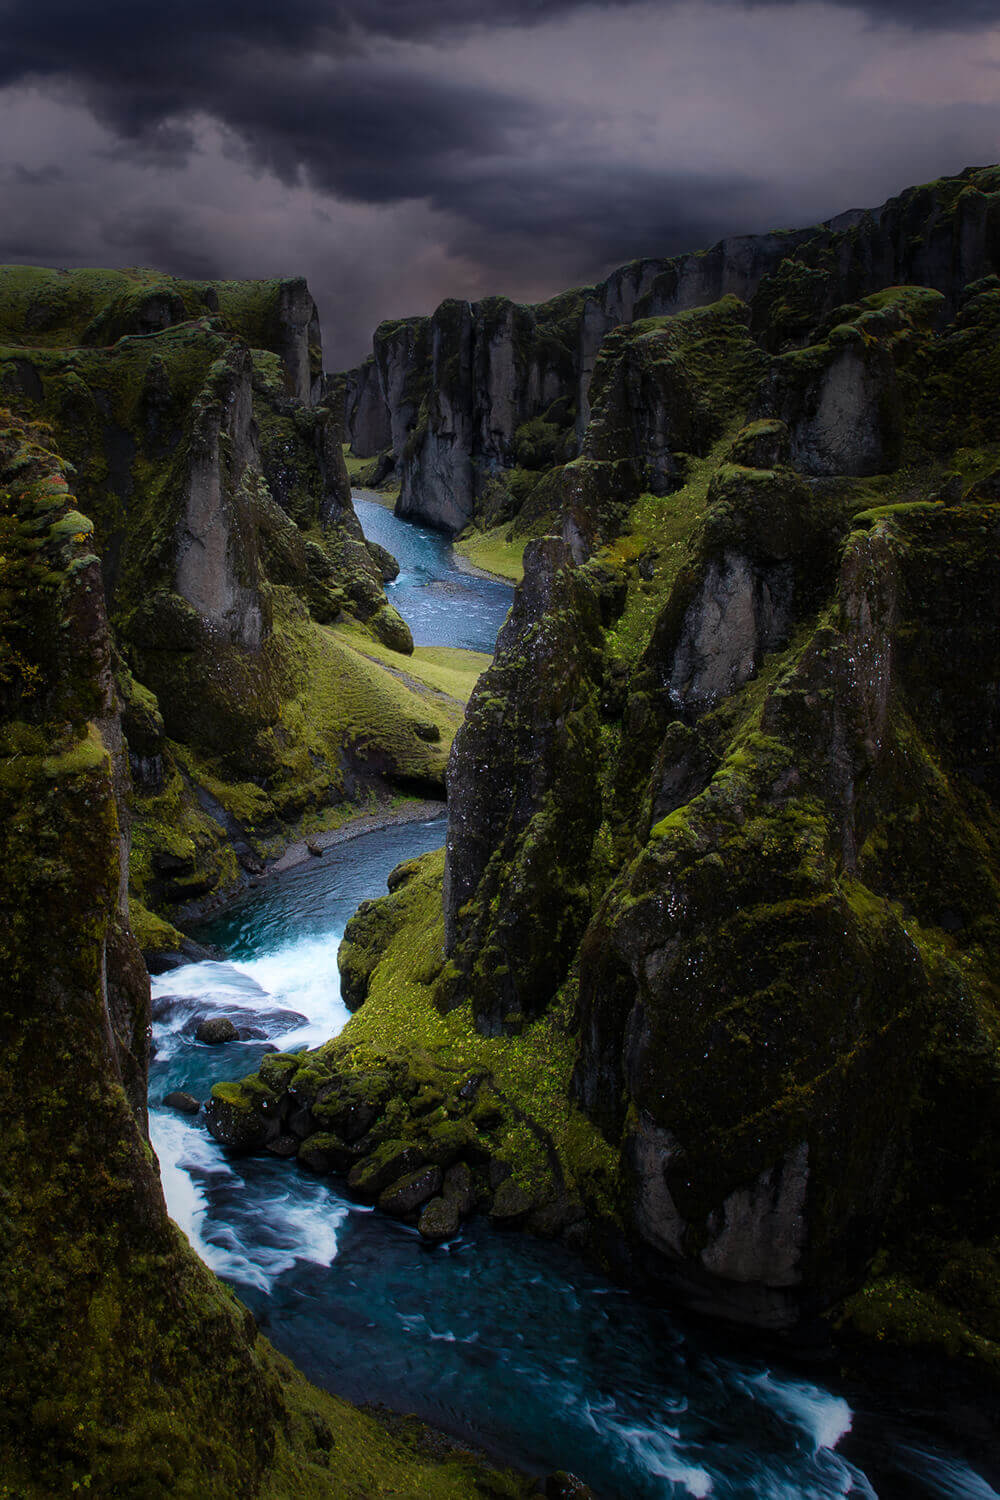 Photo of Fjaðrárgljúfur Canyon. Shot by Steph Vella